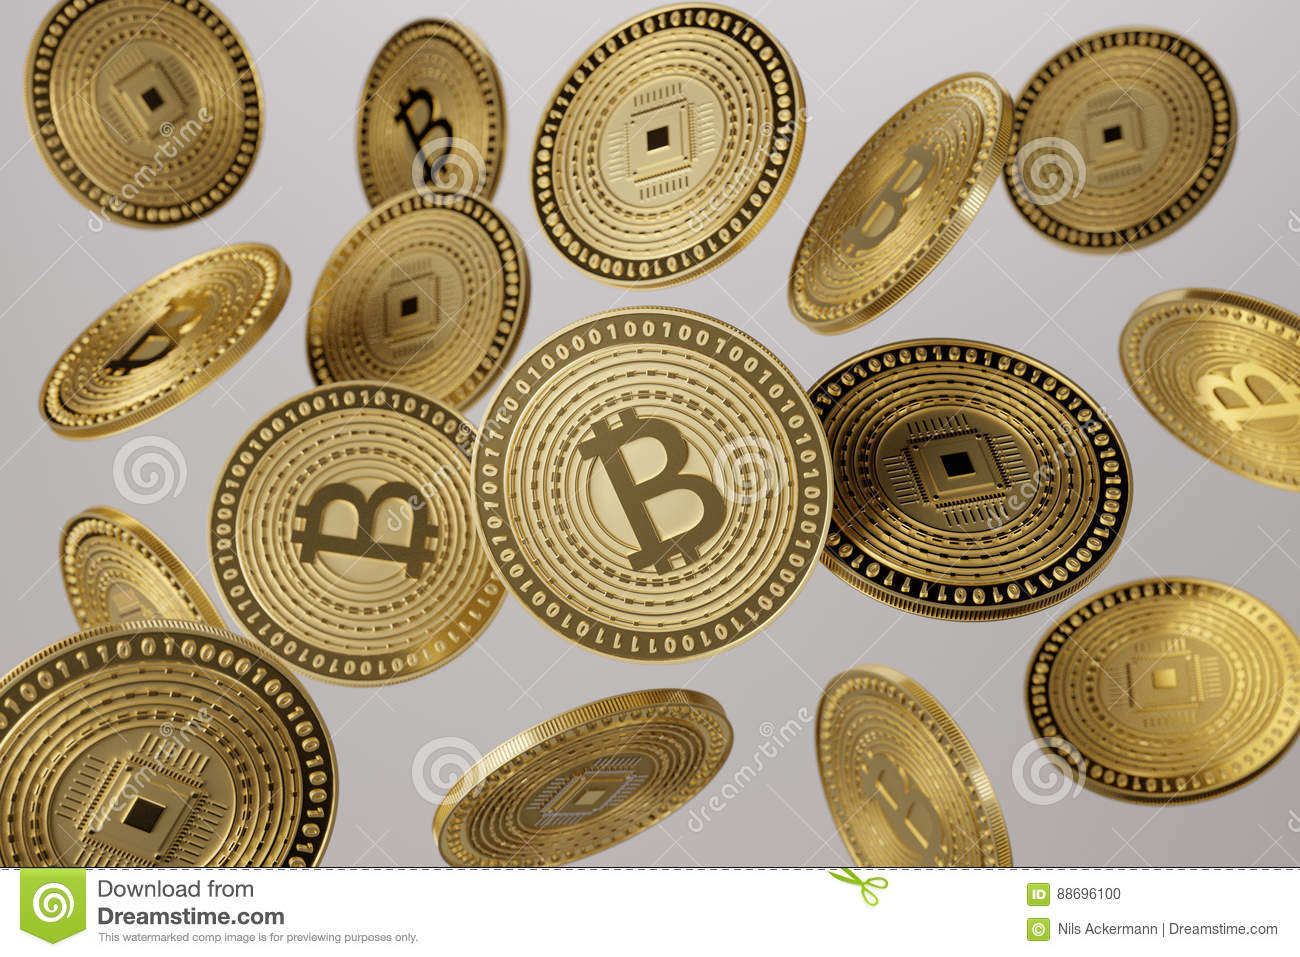 Close up of golden bitcoins tossed into the air as example for blockchain and crypto-currency concept